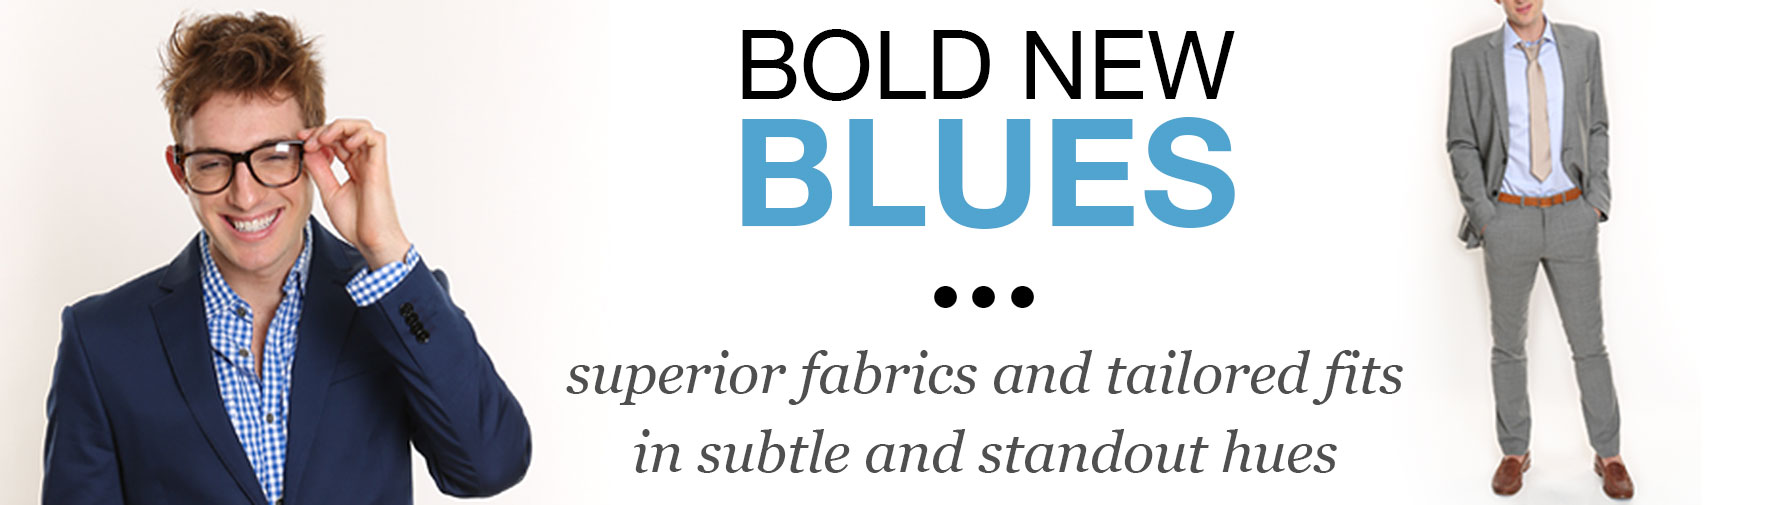 Bold New Blues - superior fabrics and tailored fits in subtle and standout hues